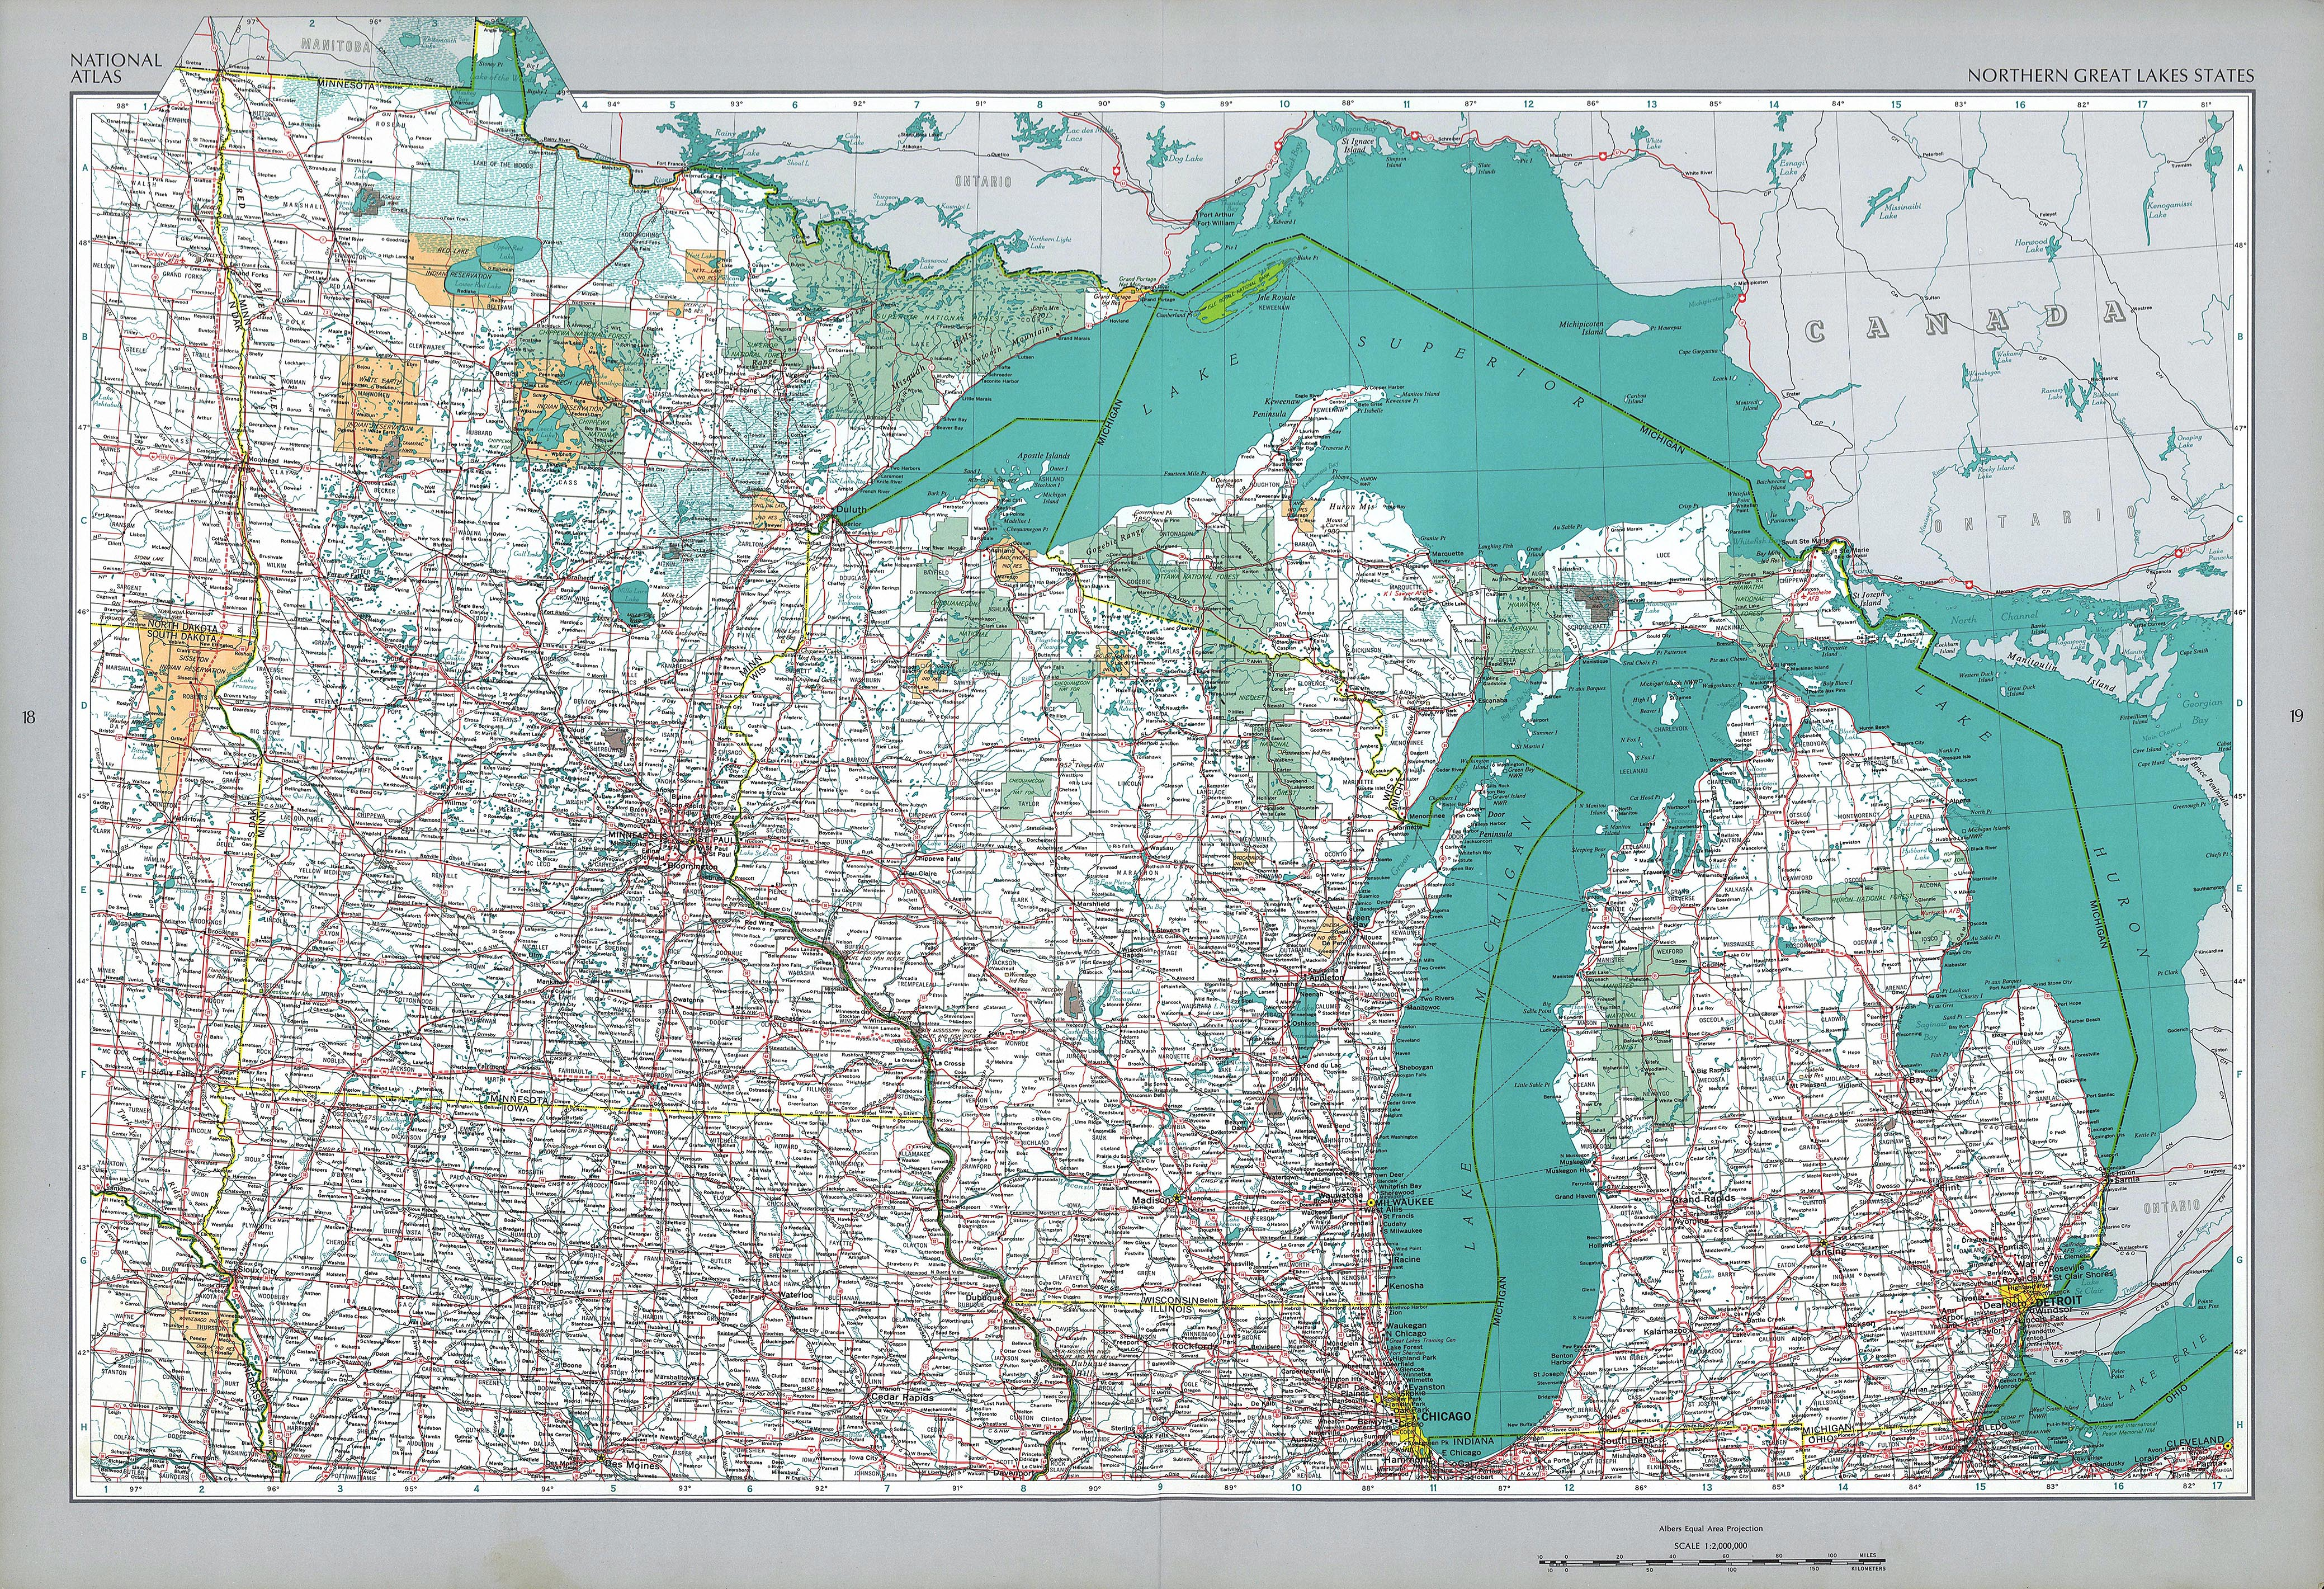 Northern Great Lakes States